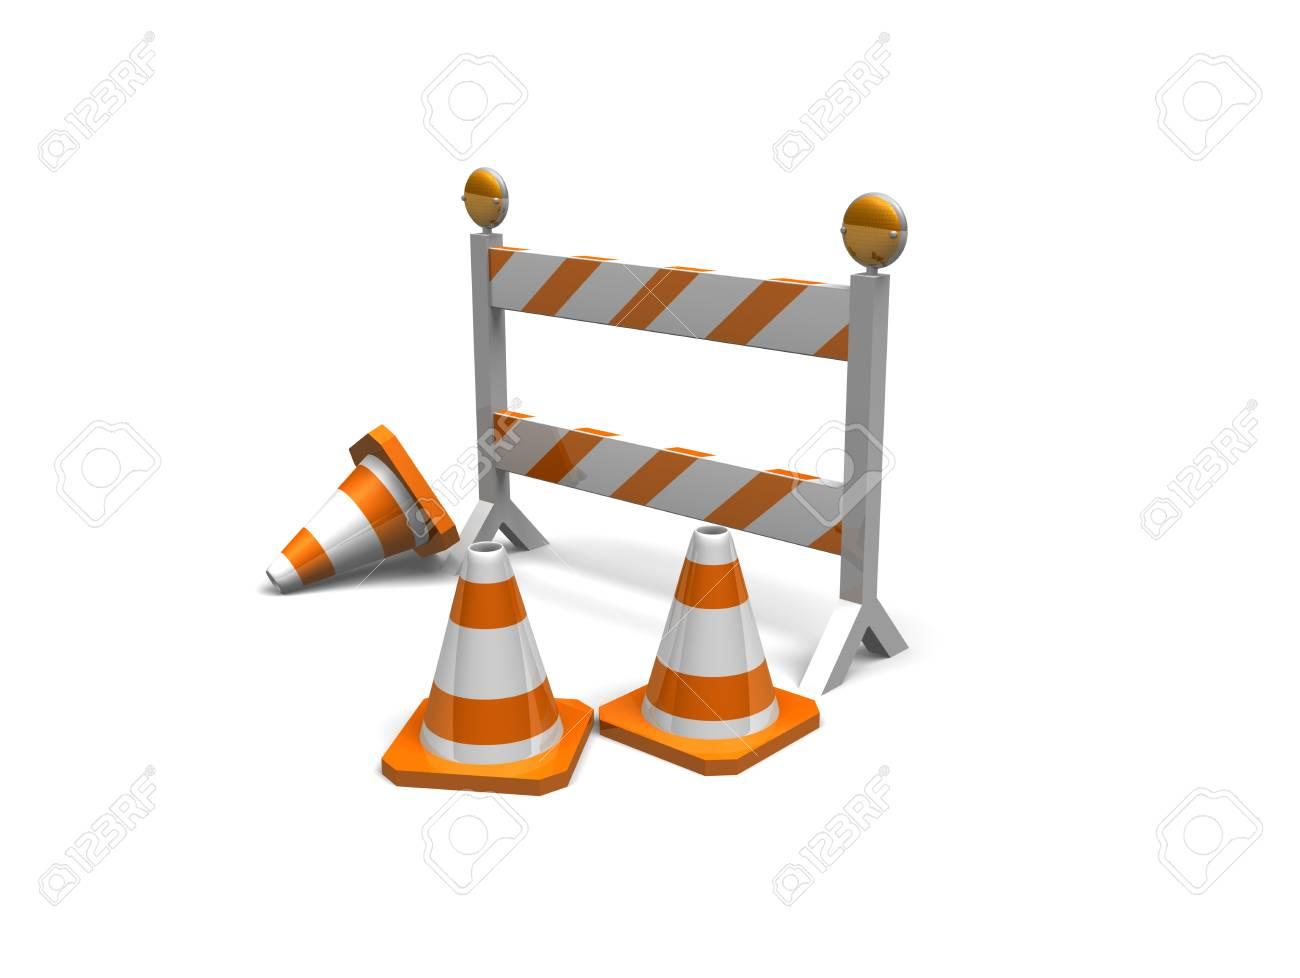 cones and a construction barrier on a white background with shadows Stock Photo - 16967658